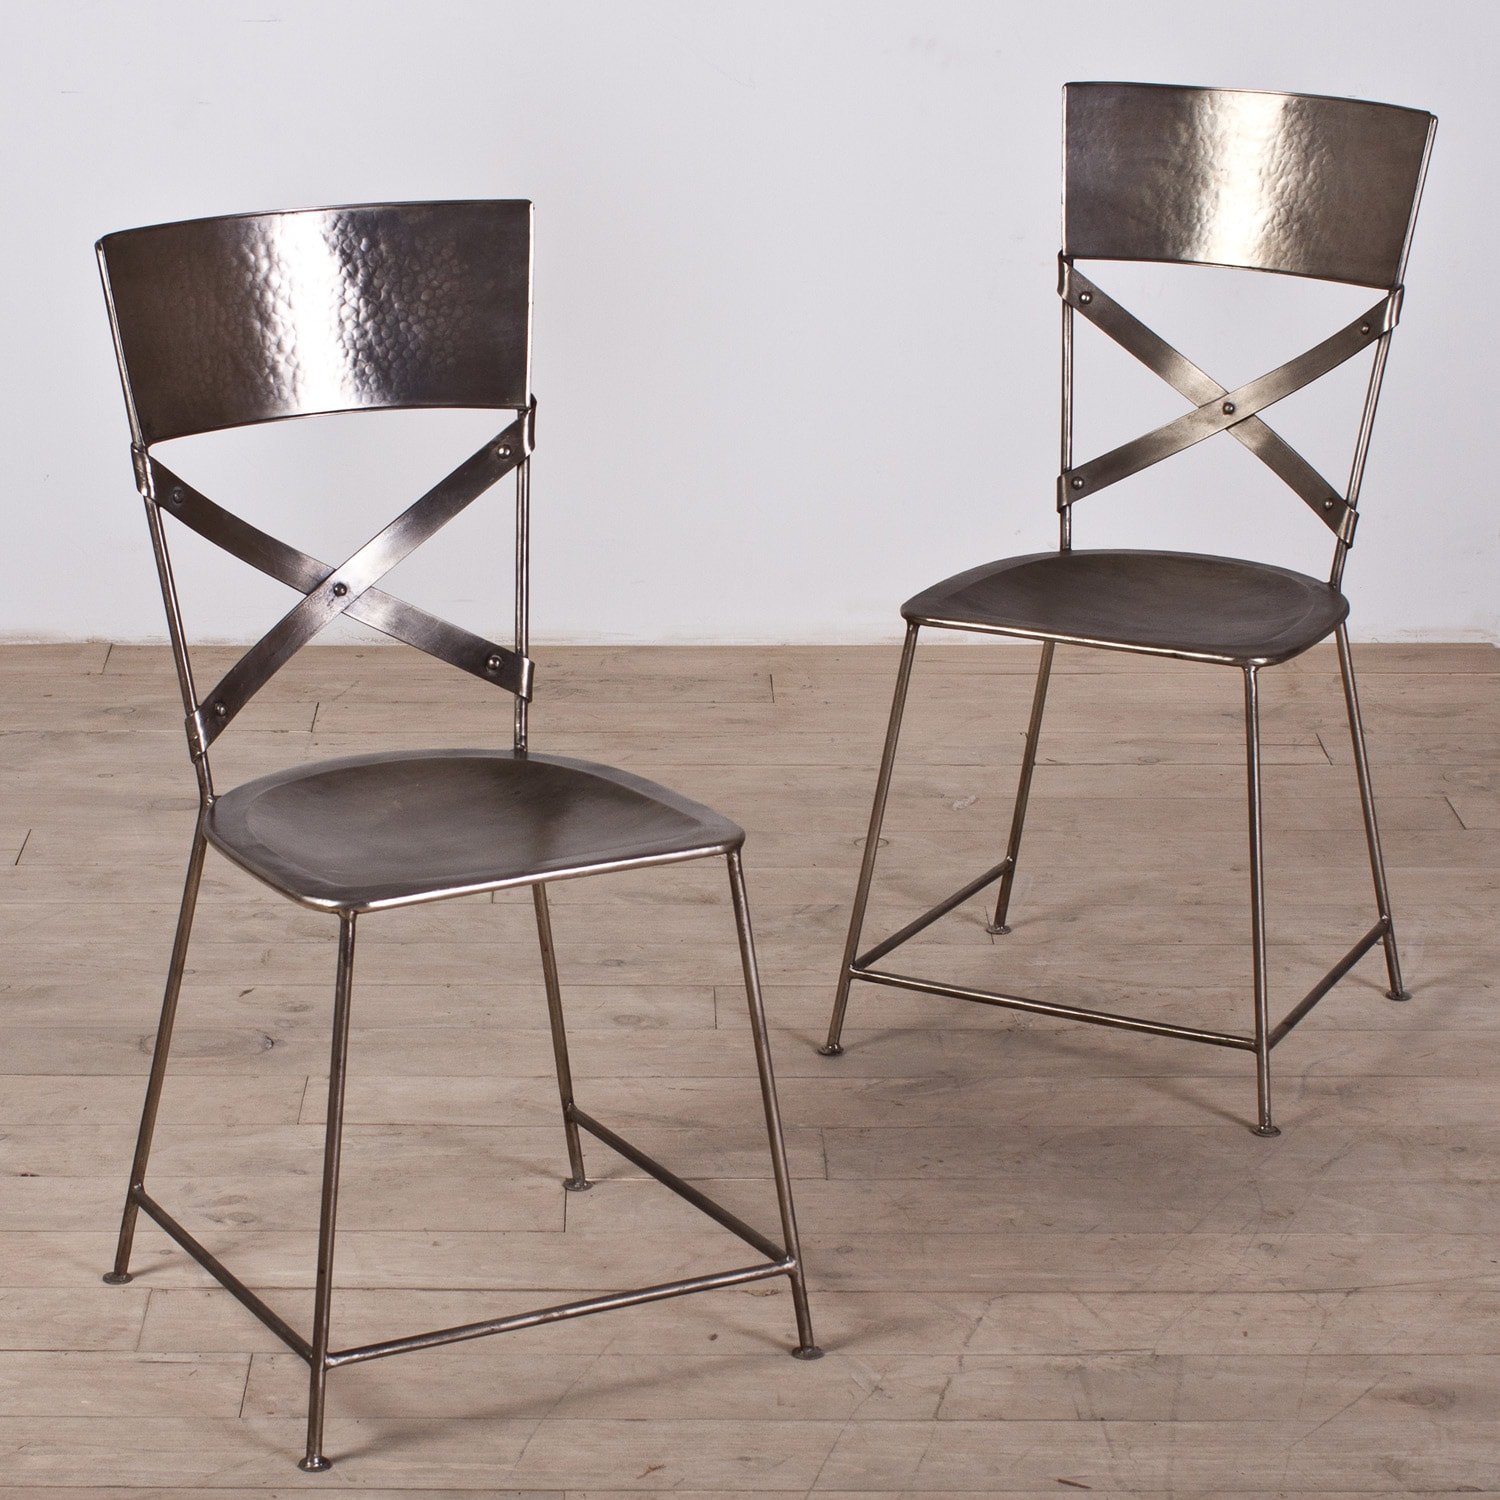 Set of Two Jabalpur Dining Chair Antique Nickel (India)